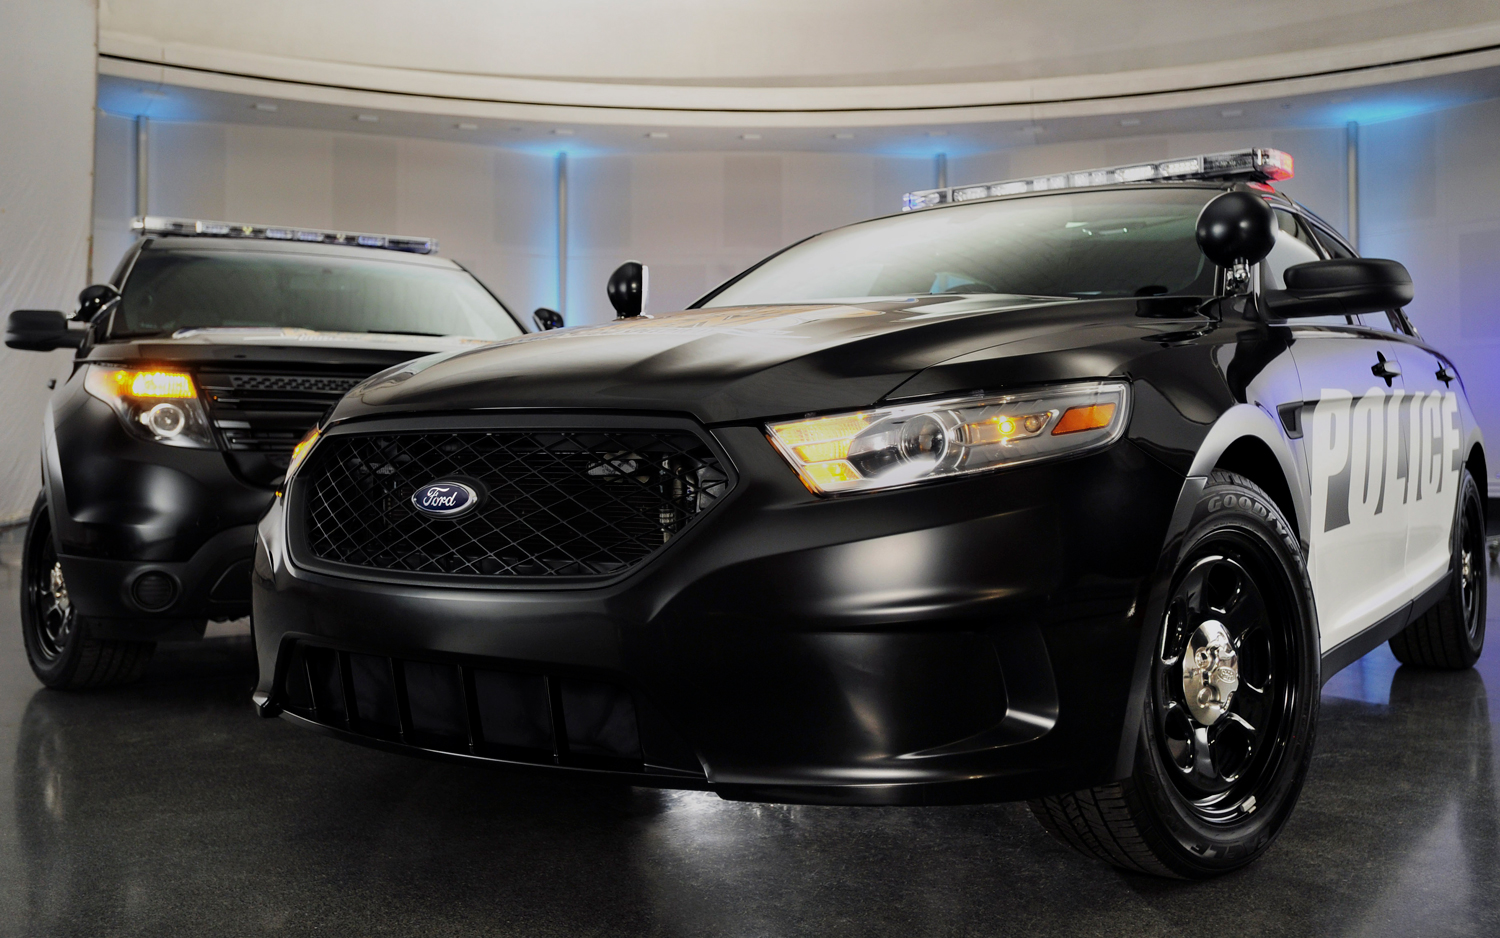 hight resolution of ford police interceptor v 6 gets higher mpg than any police ford ever